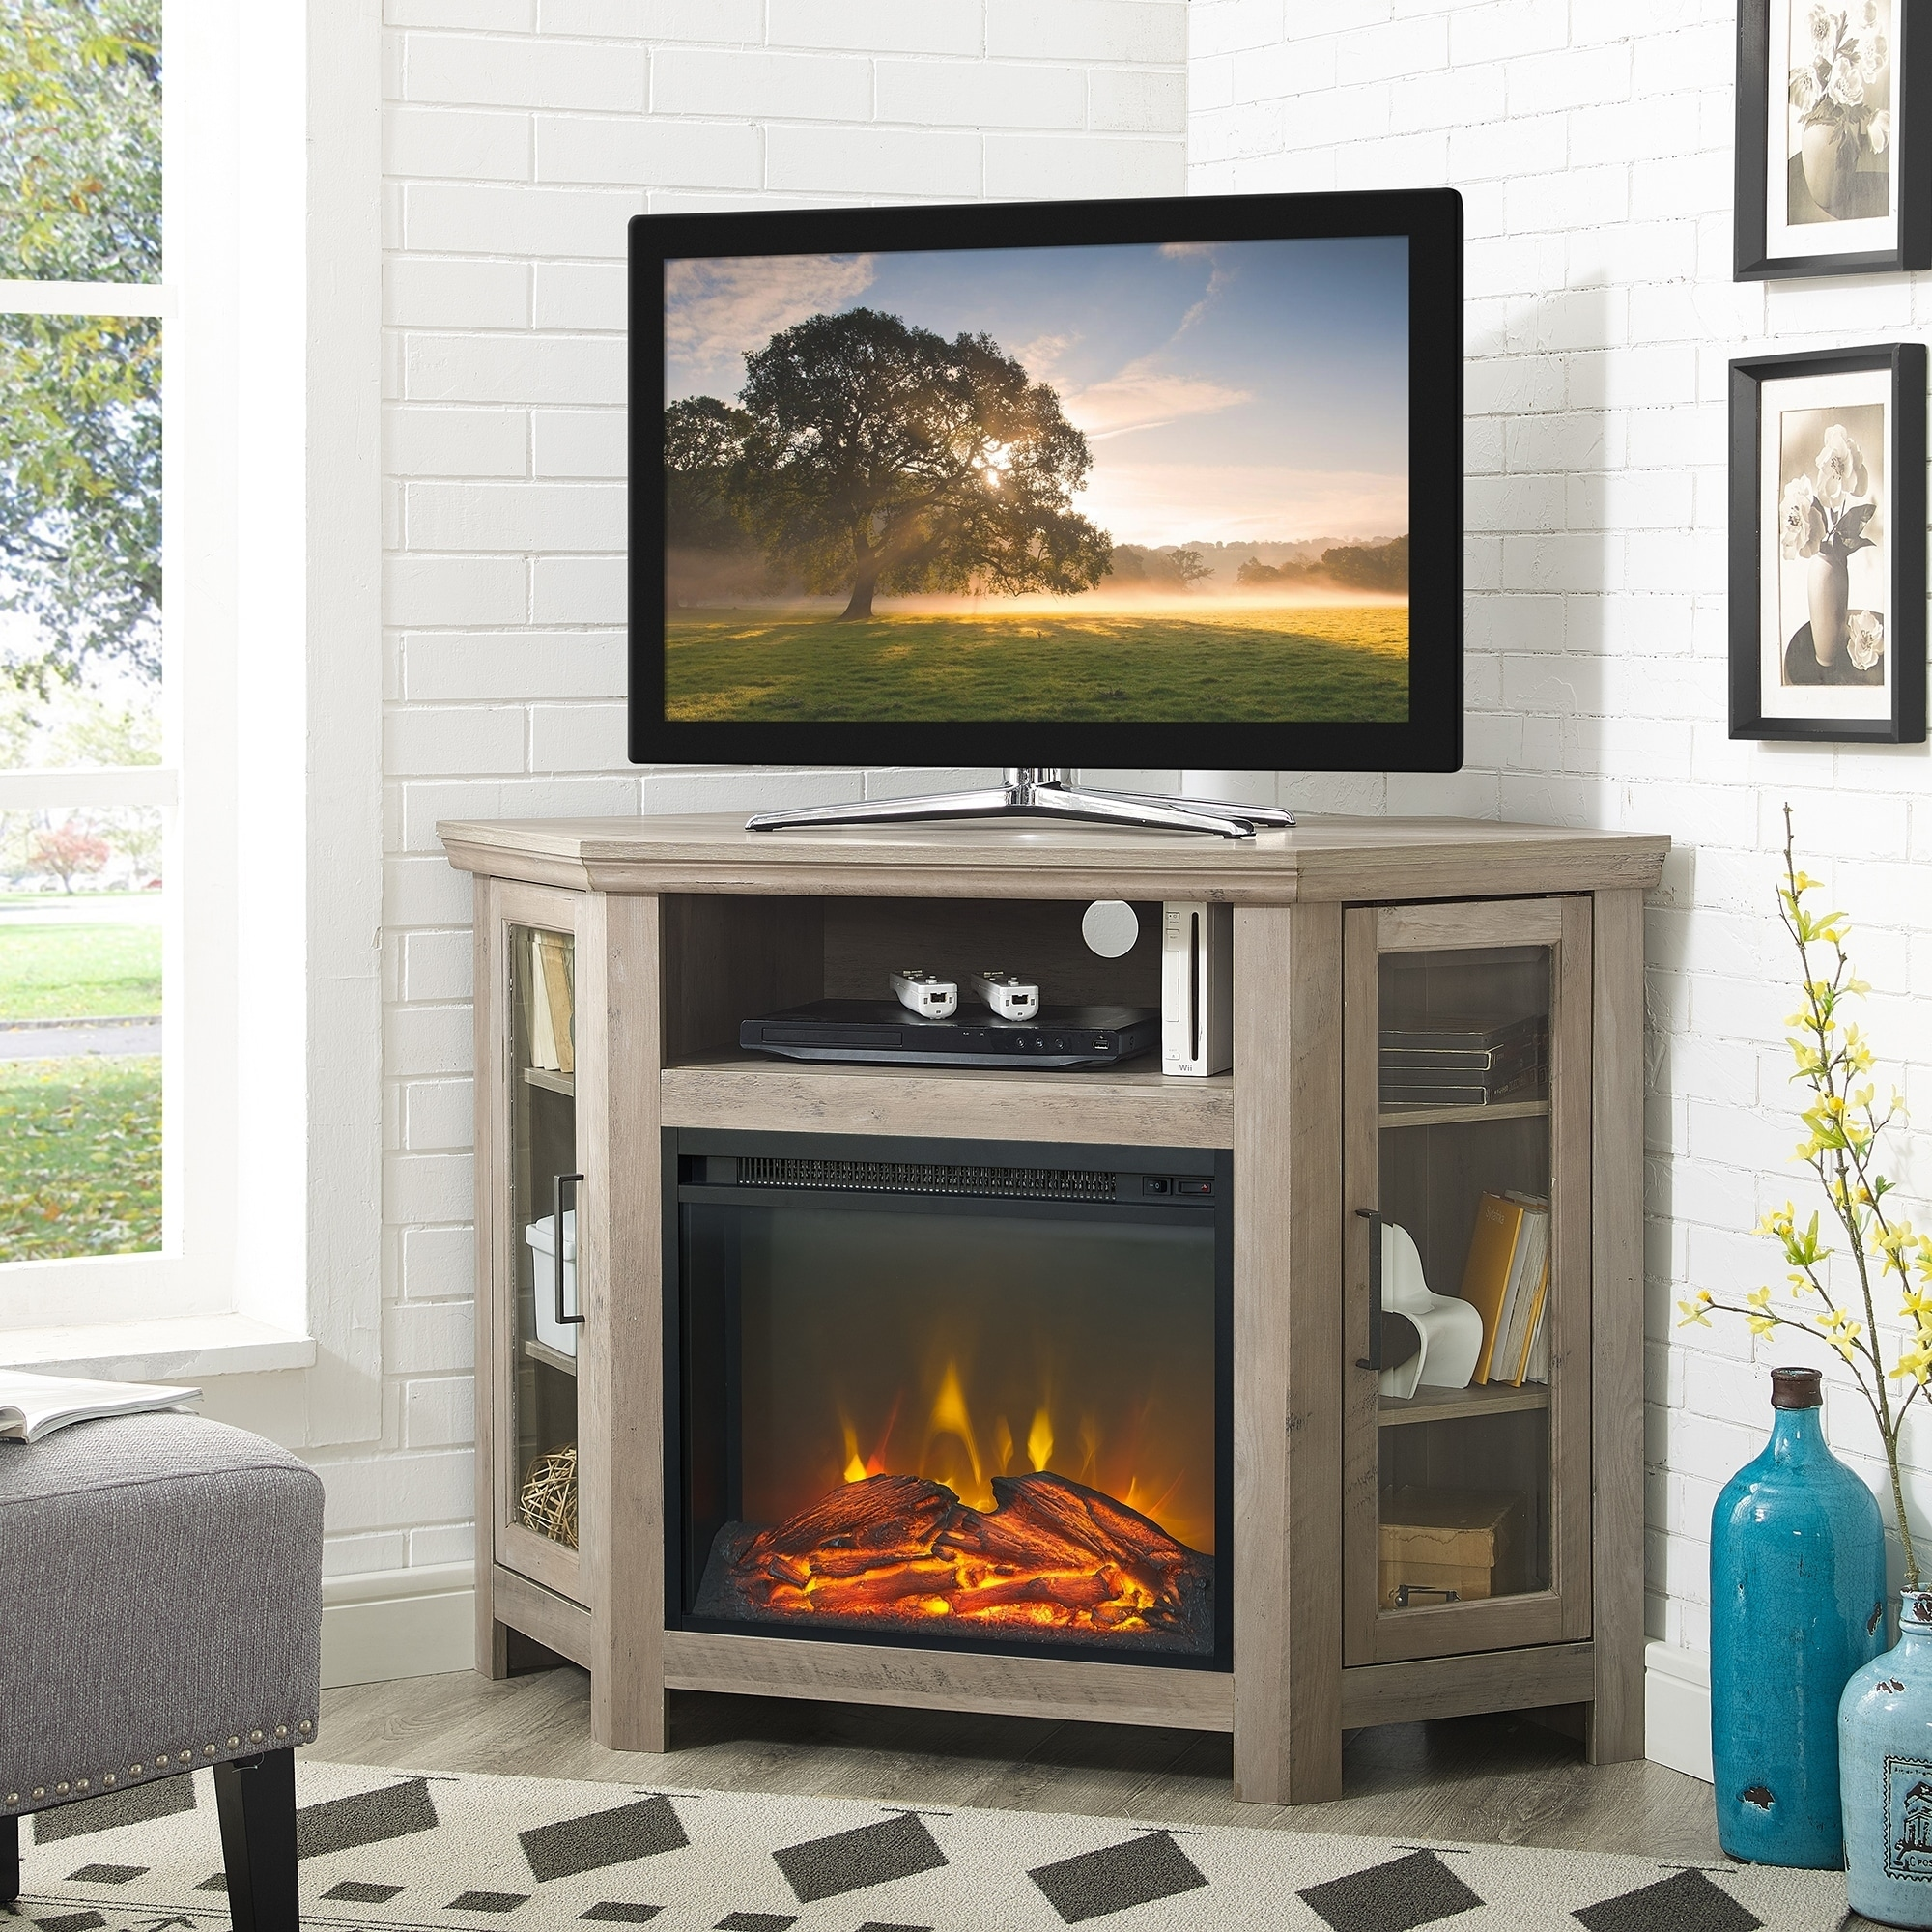 Shop 48 Corner Fireplace Tv Stand Console 48 X 20 X 32h On Sale